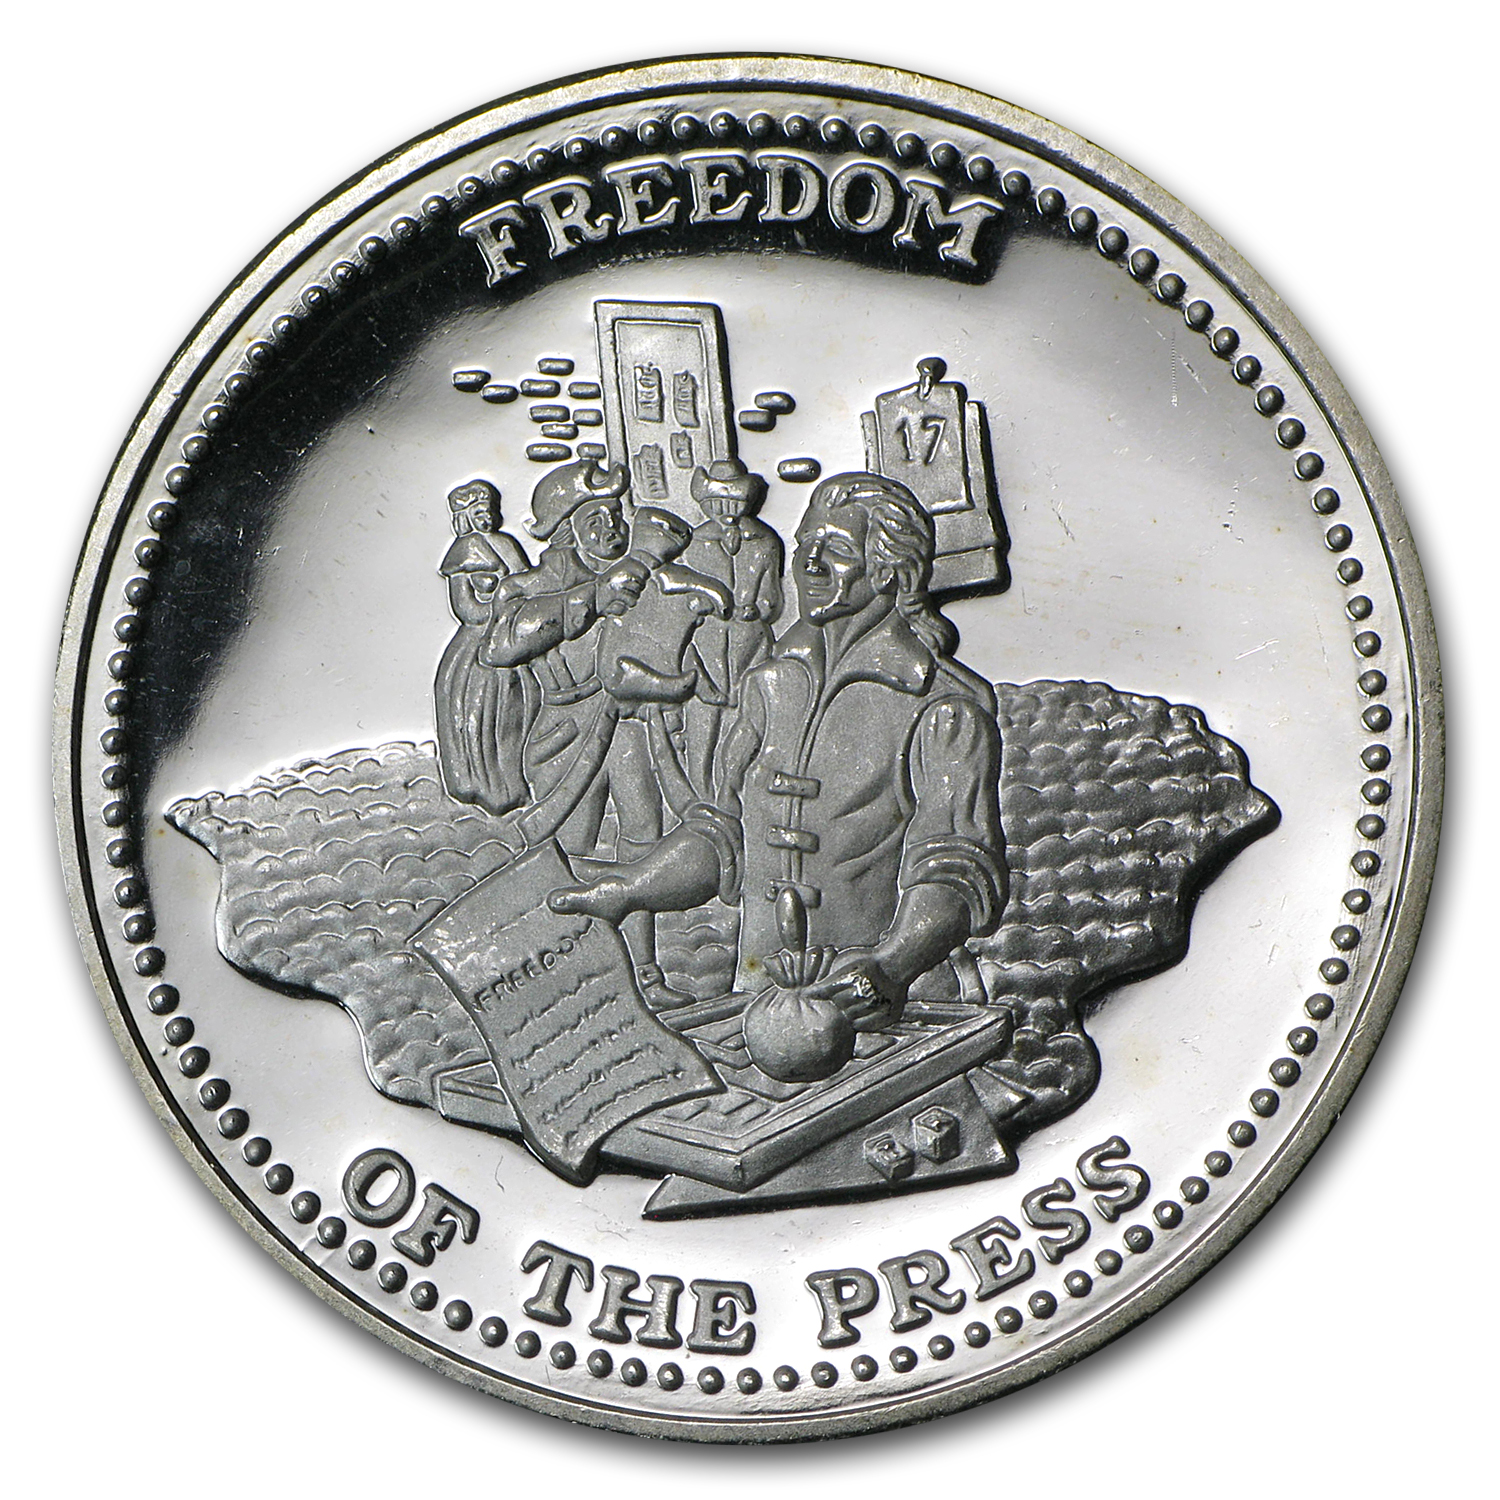 1 oz Silver Round - Johnson Matthey (Freedom of the Press)